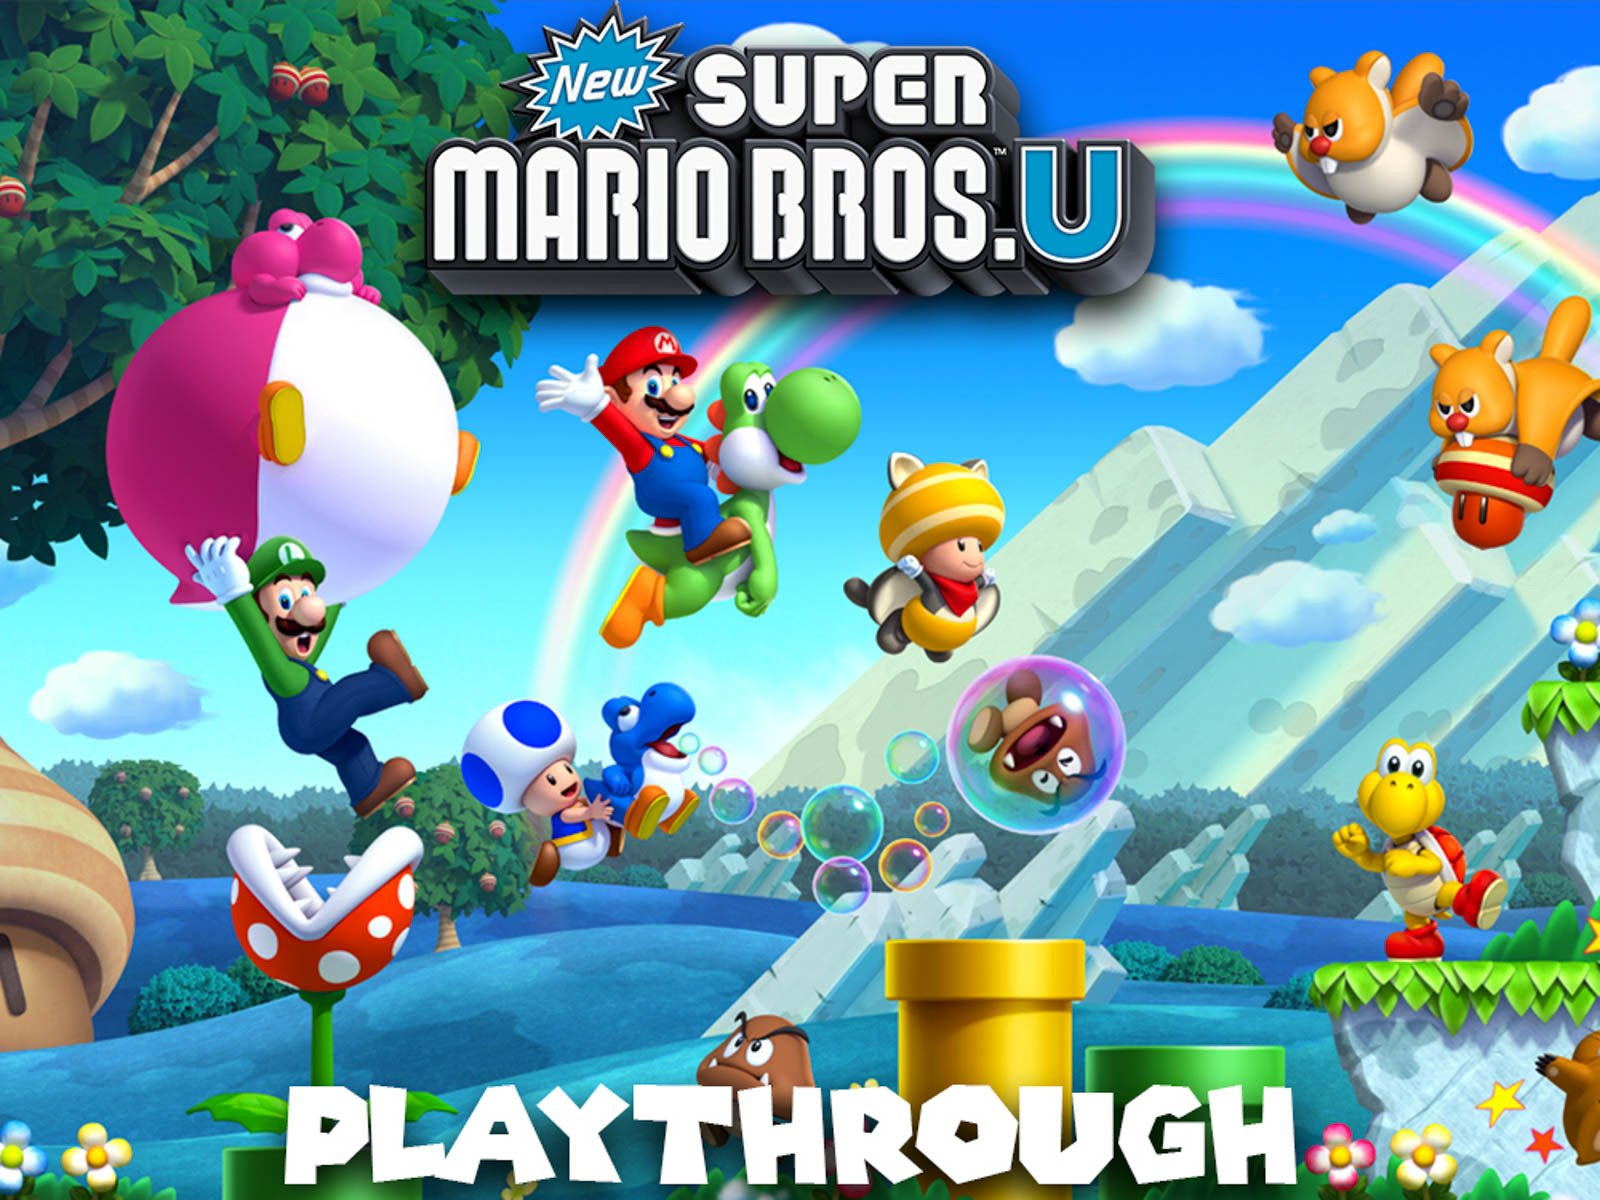 Clip: New Super Mario Bros. U Playthrough